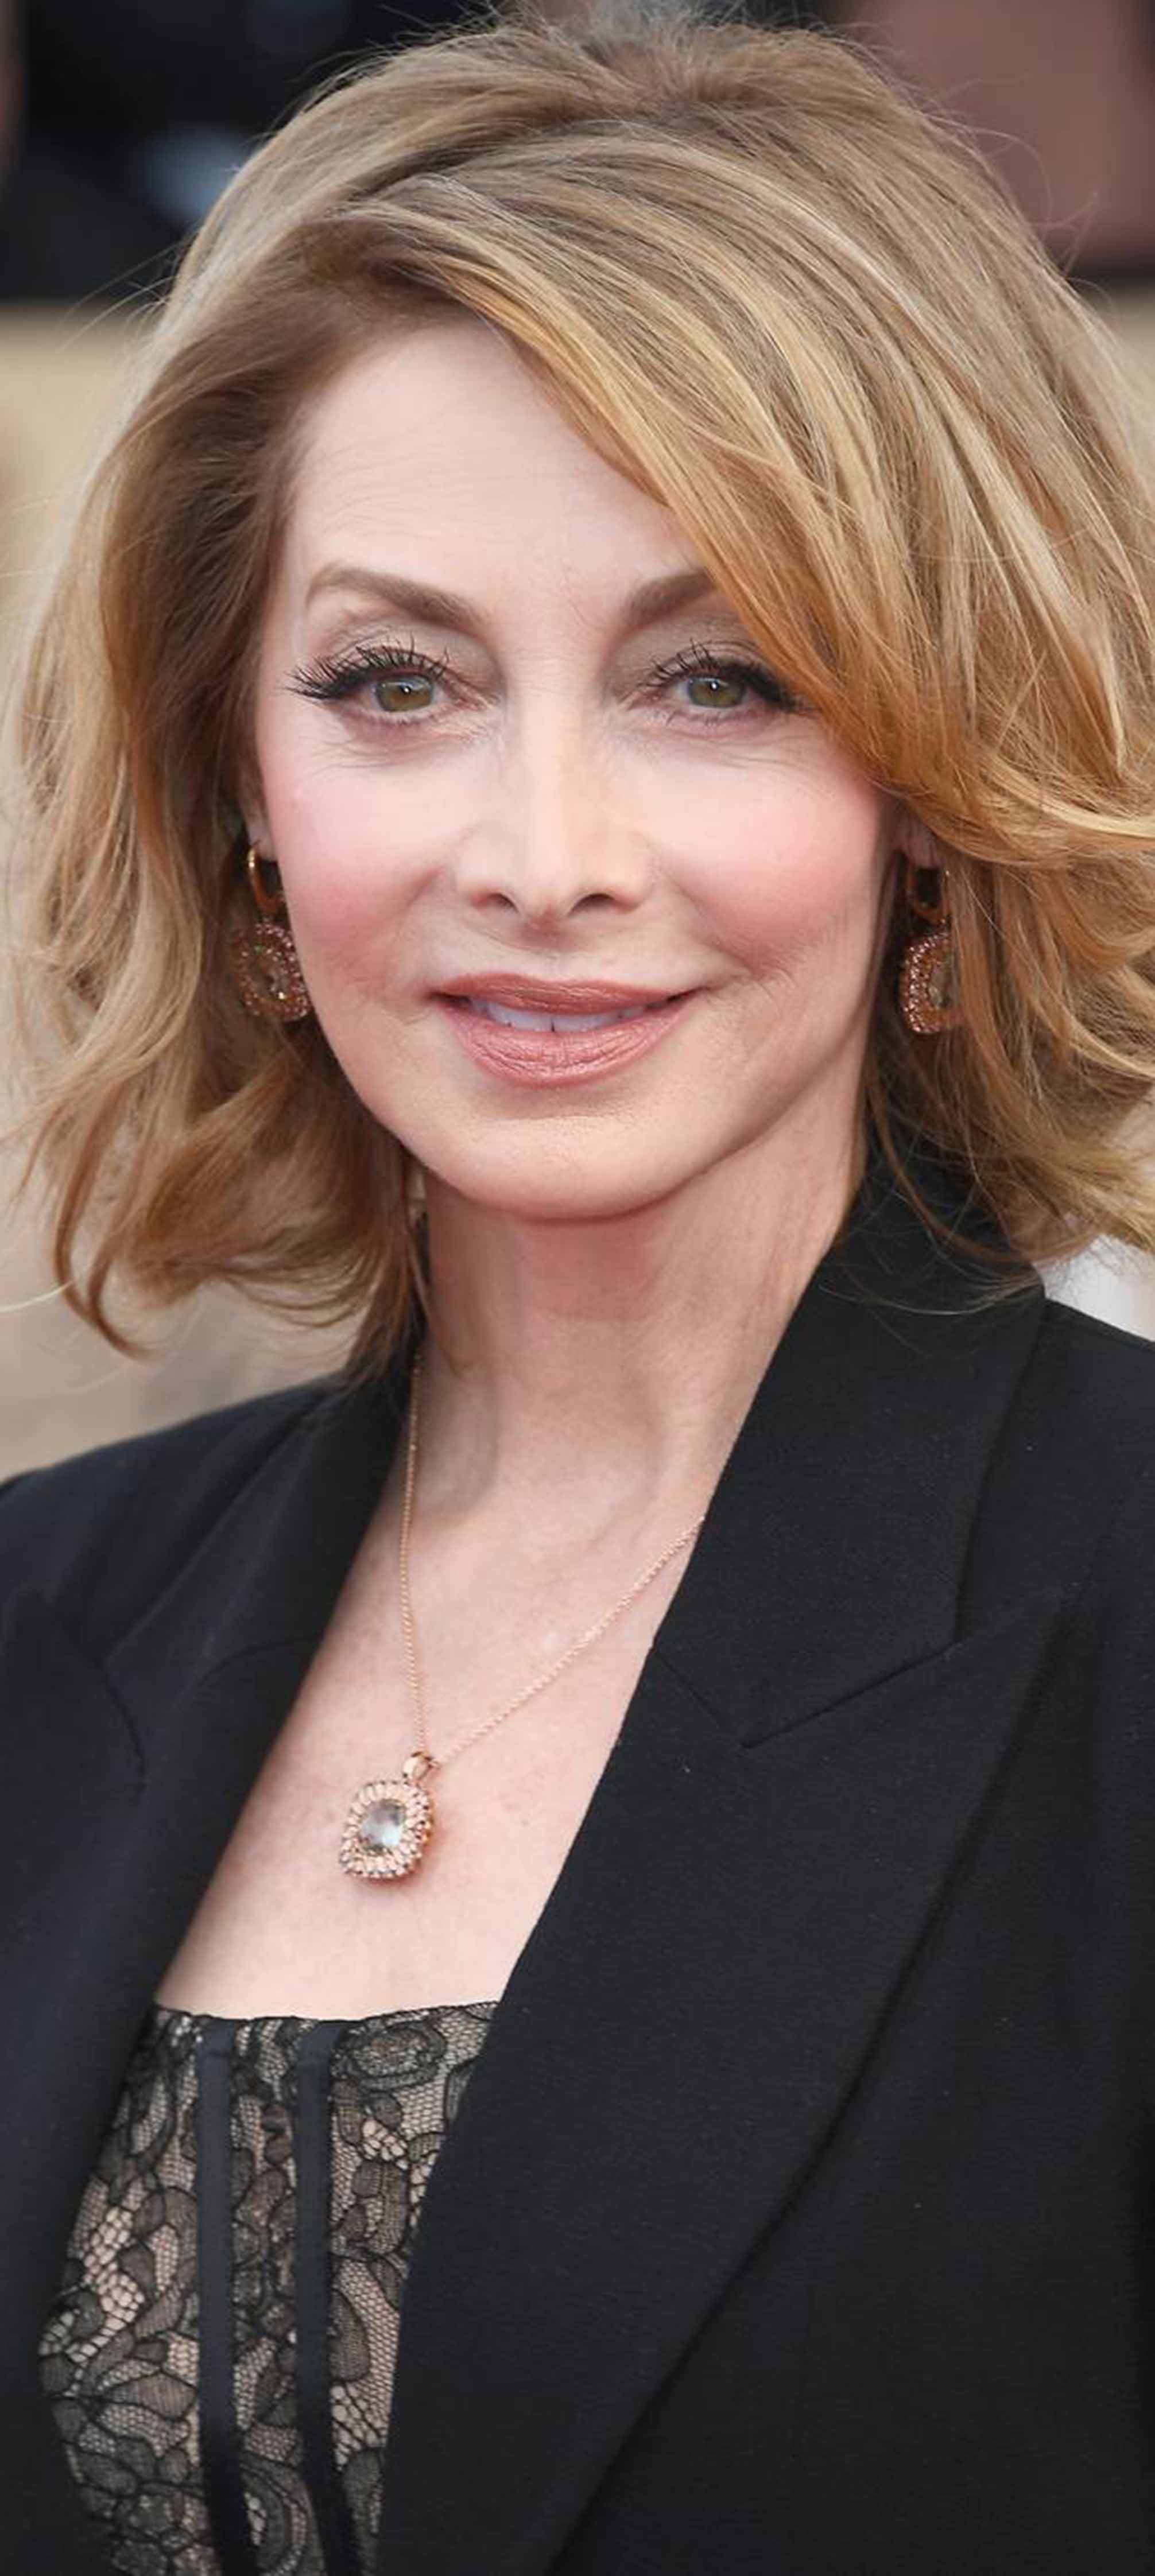 pin by maty cise on sharon lawrence | hair cuts, sharon